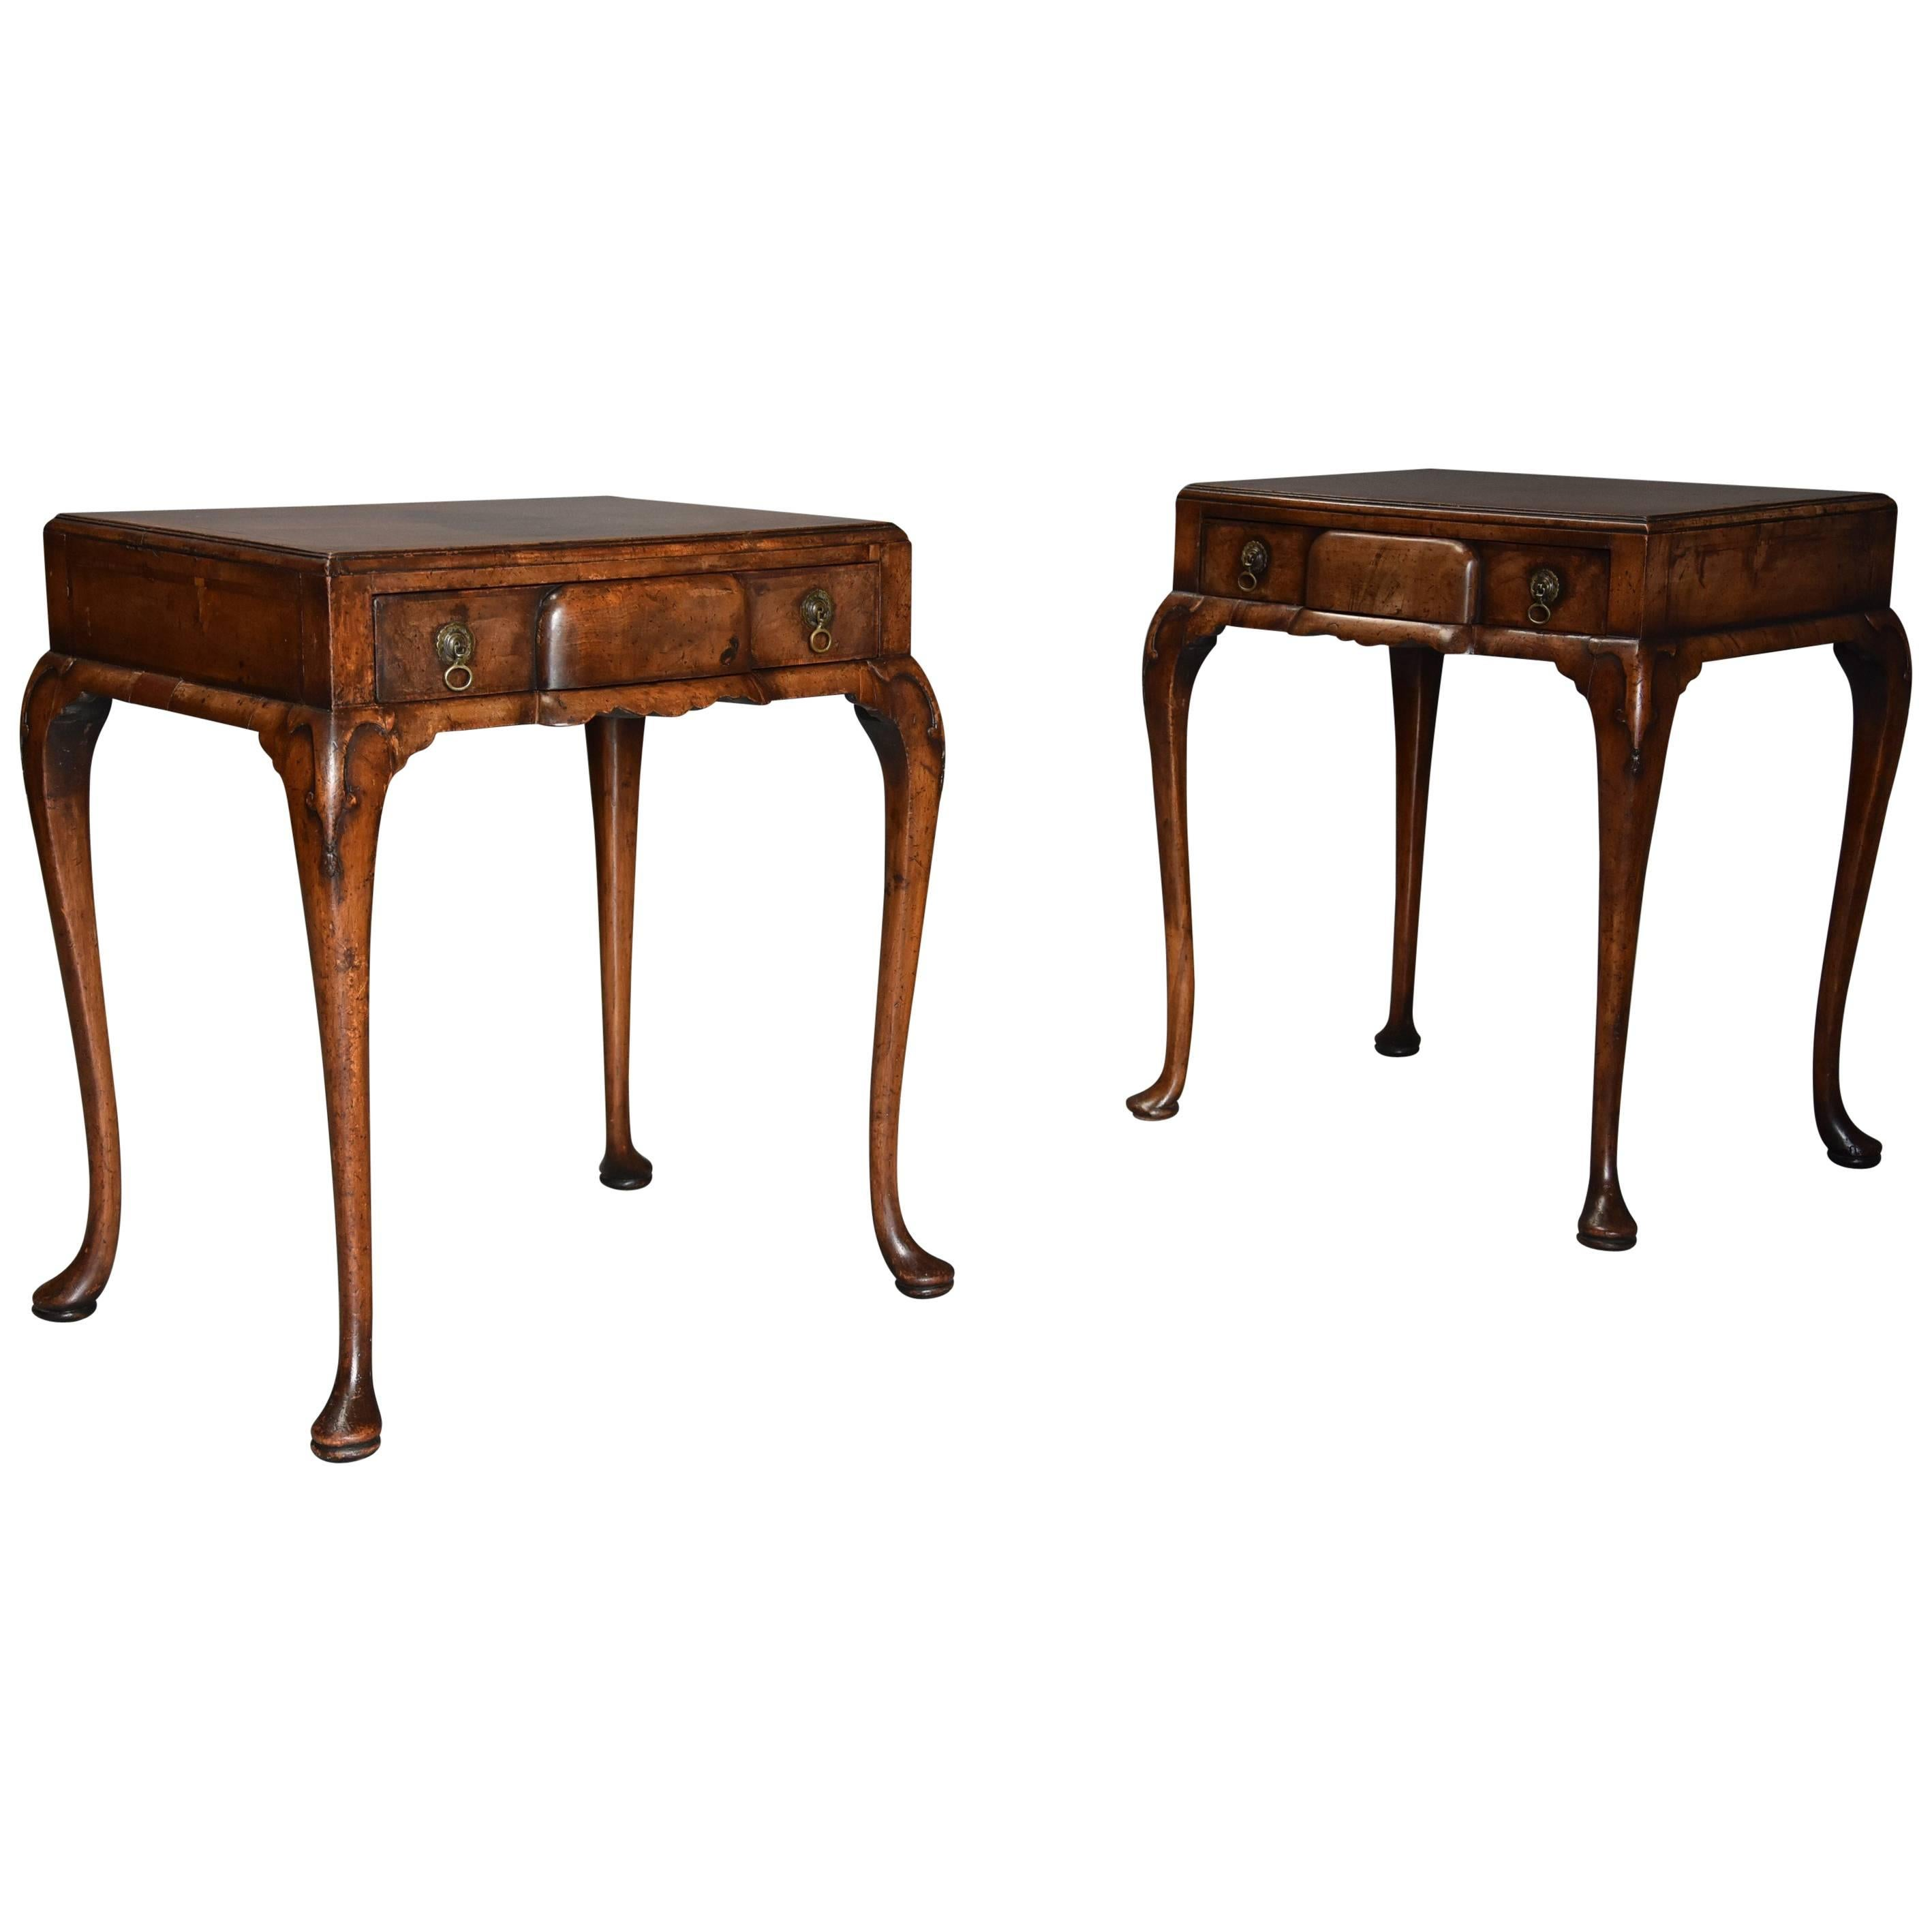 Pair Of Early 20th Century Queen Anne Style Freestanding Walnut Side Tables  1